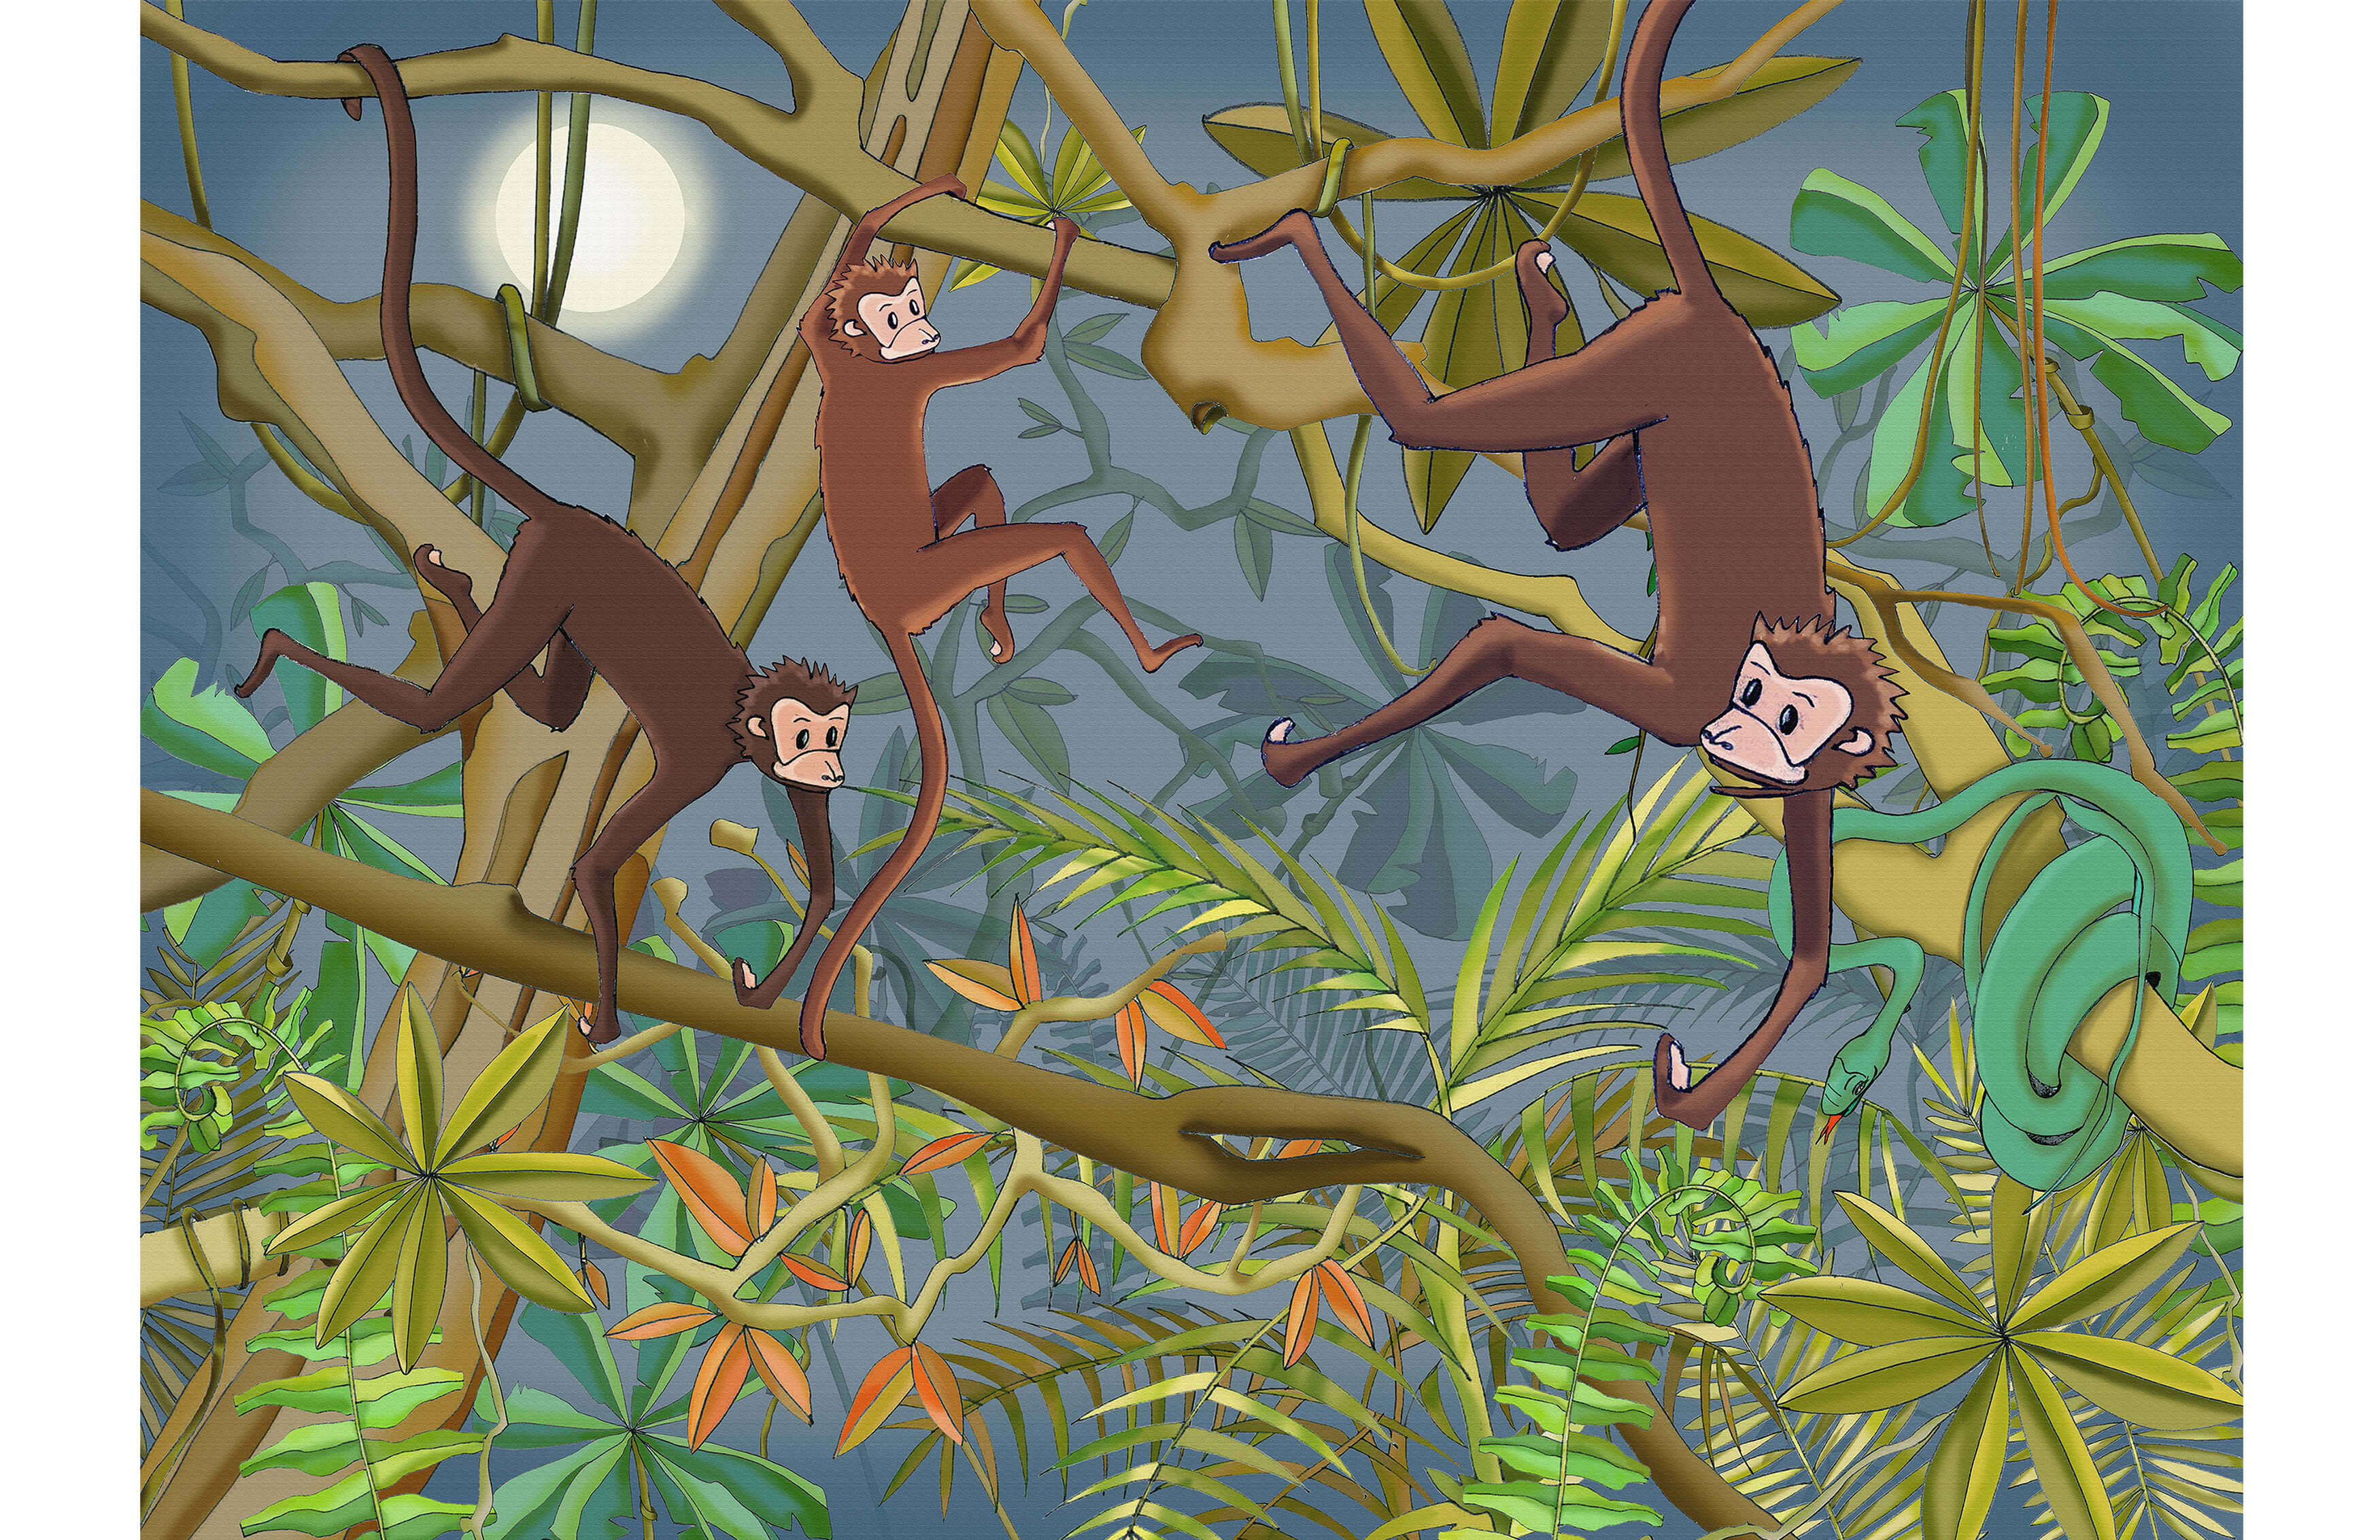 WALLPAPER-MONKEY-MURAL